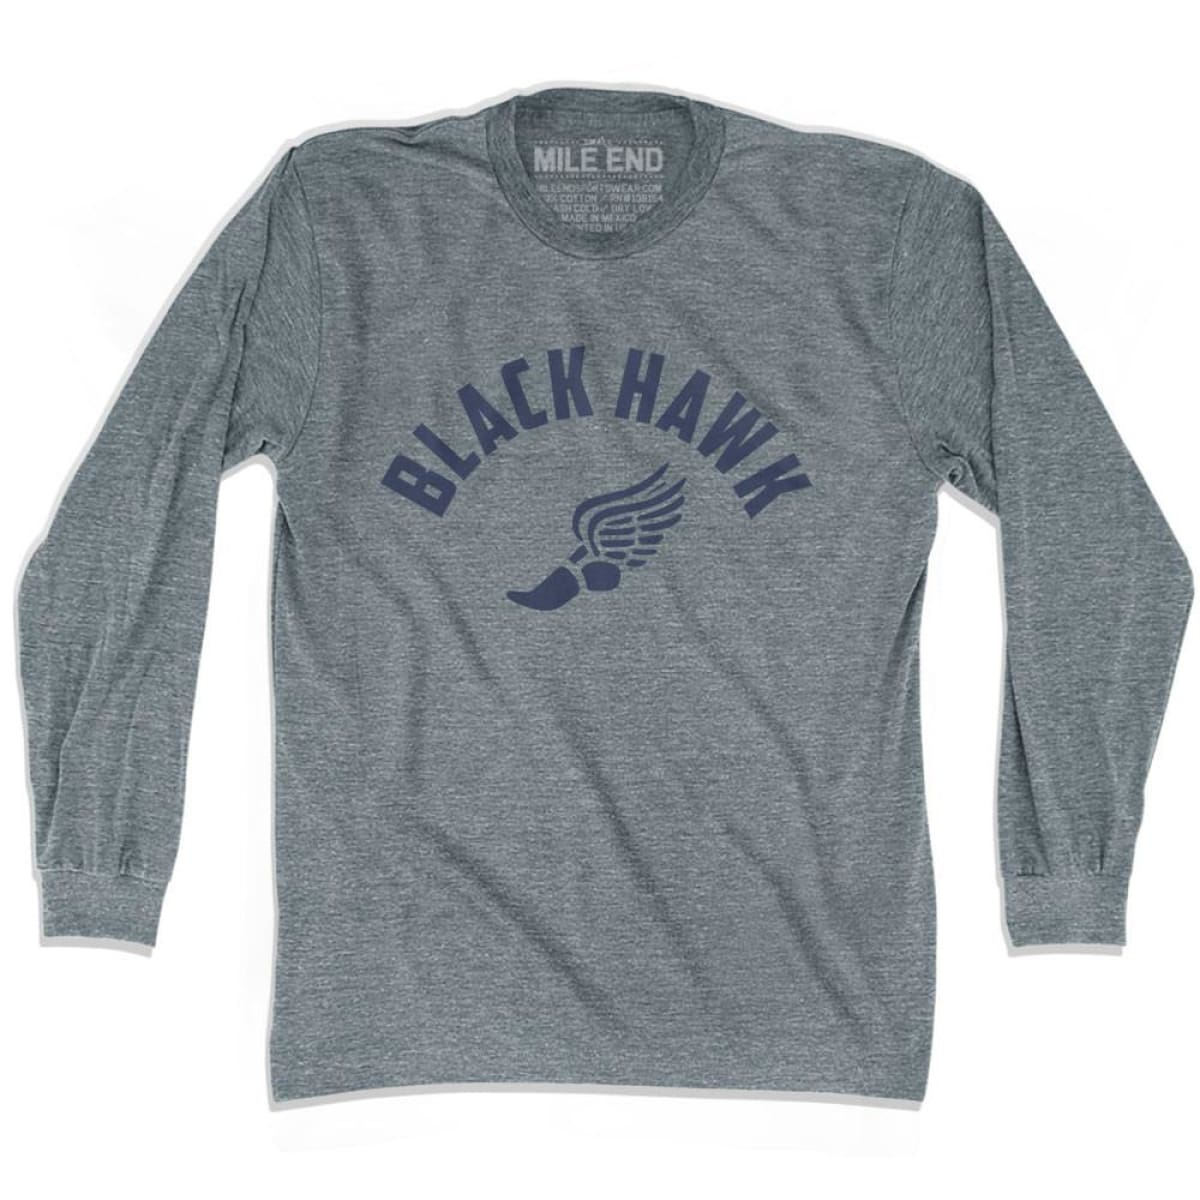 Black Hawk Track Long Sleeve T-shirt - Athletic Grey / Adult X-Small - Mile End Track